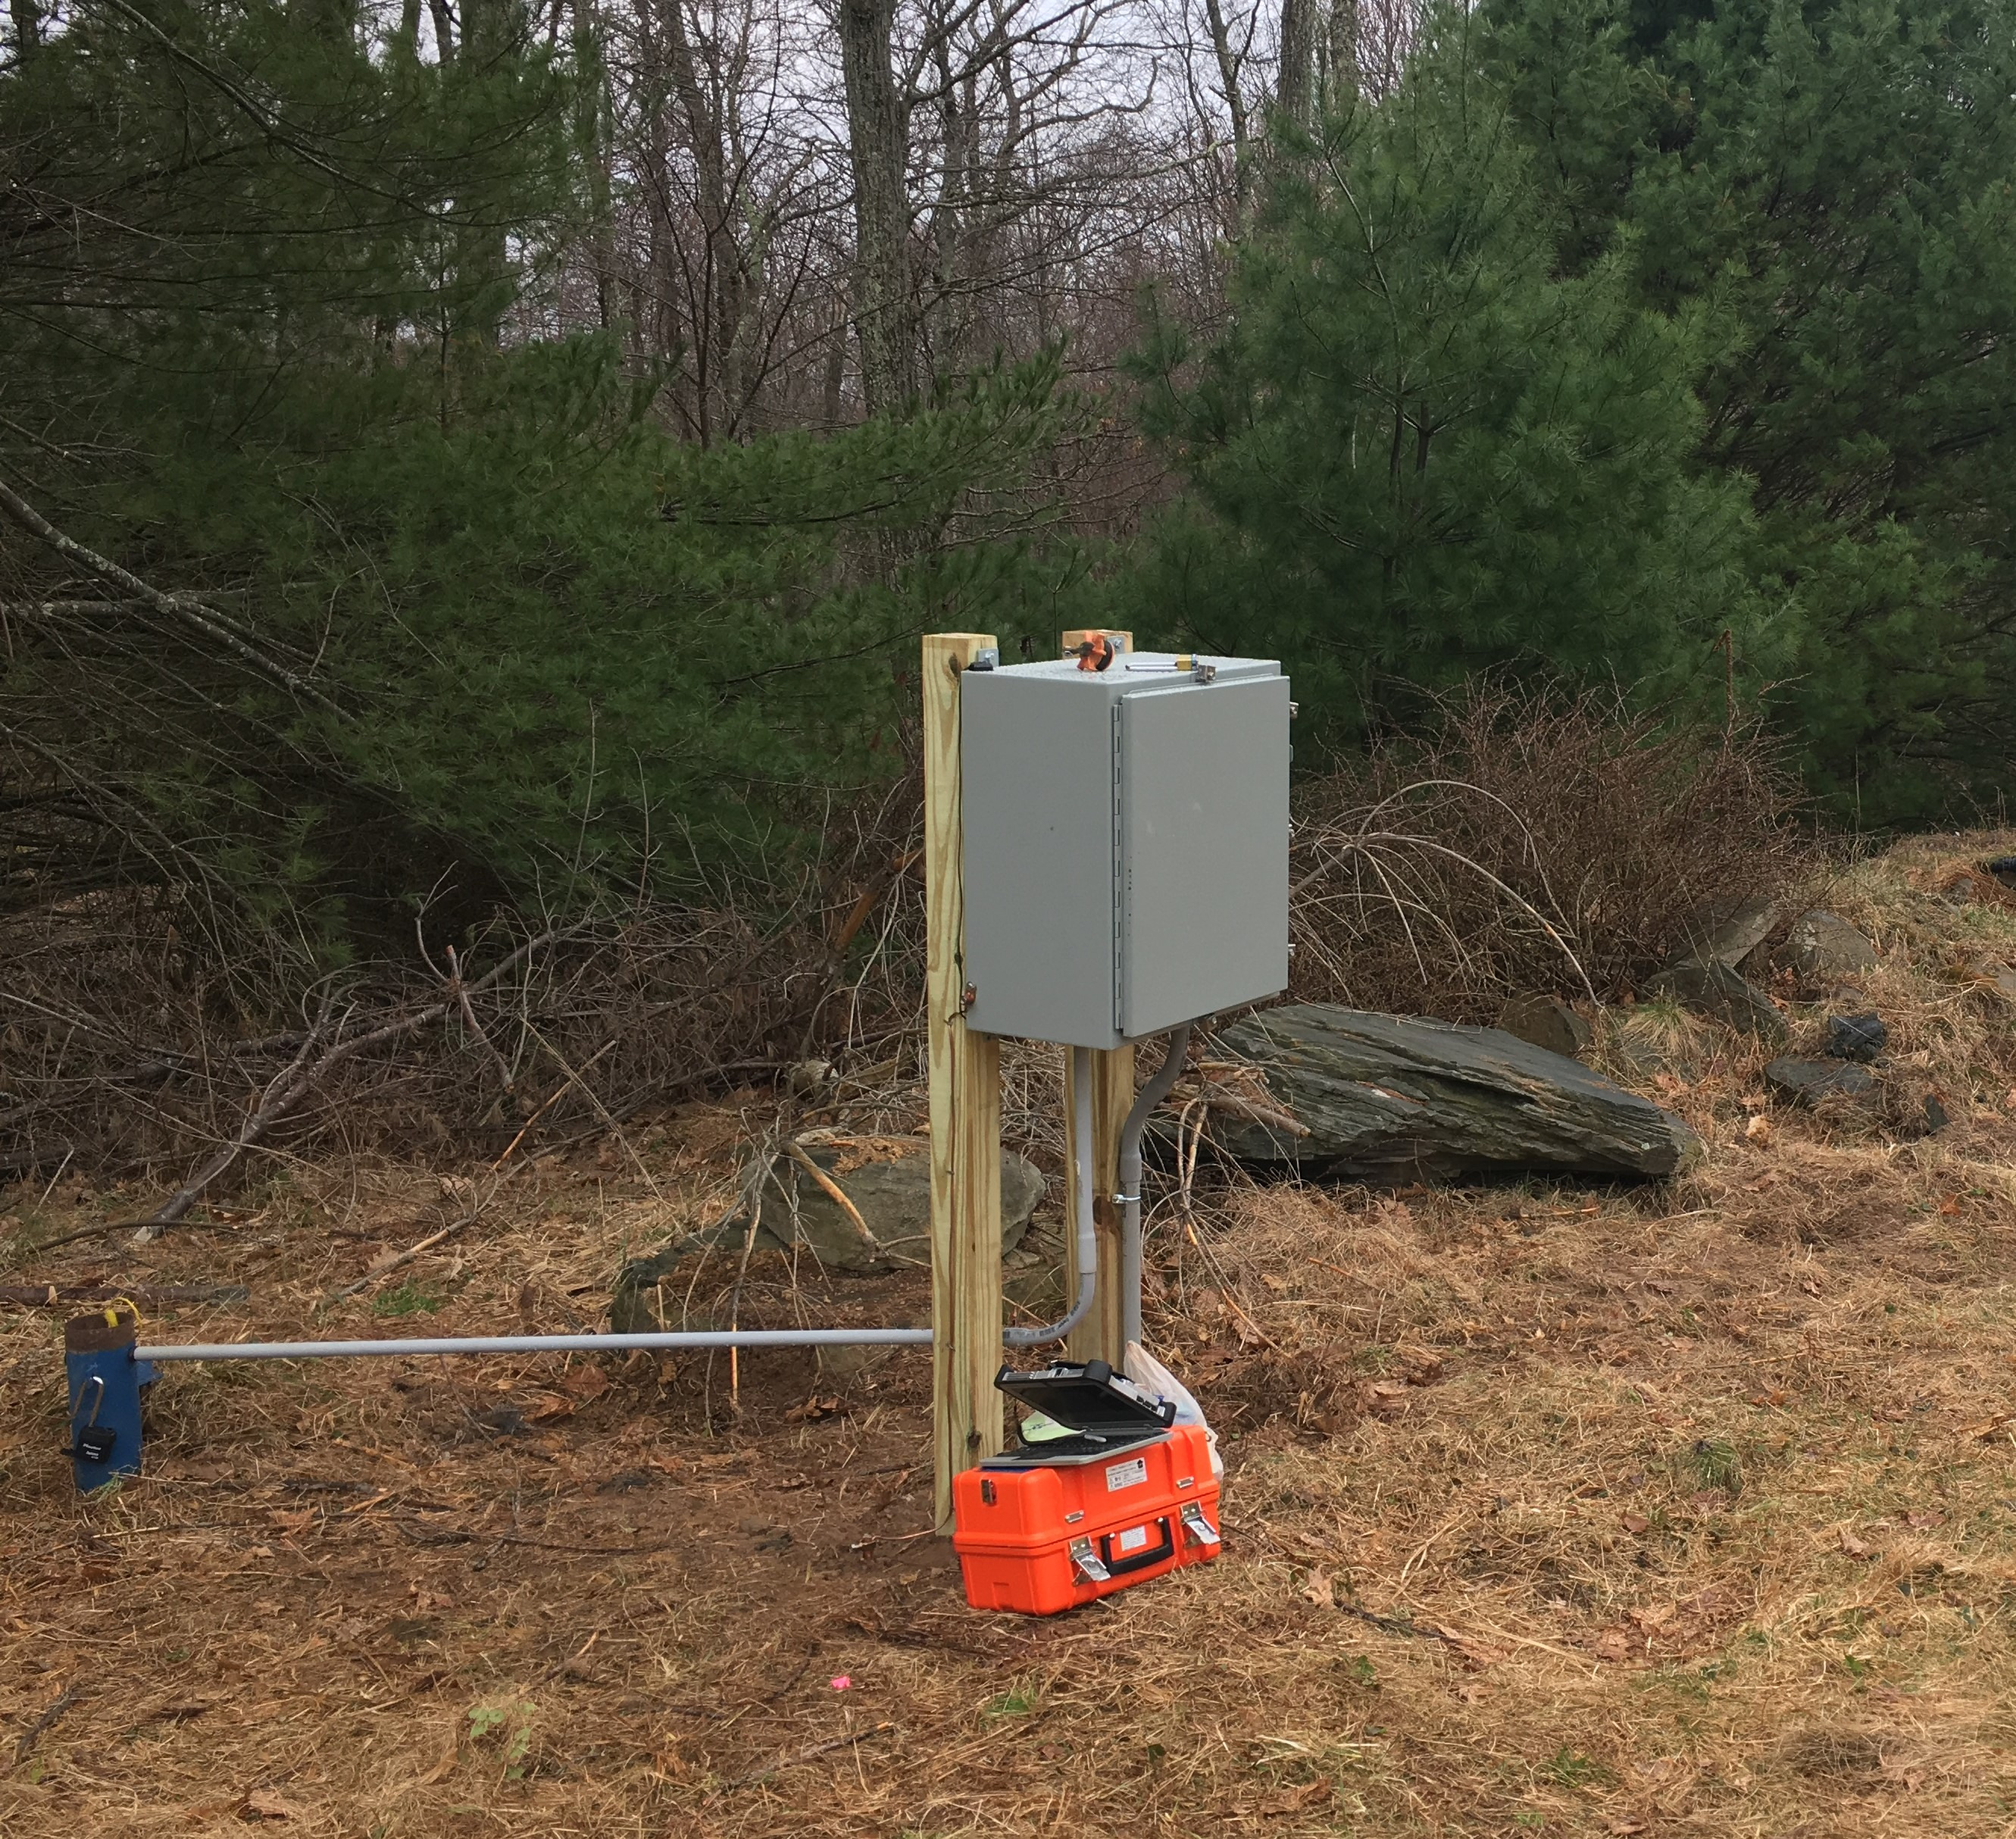 Photo of station on LOCAL NUMBER, SV-568, NEAR GLEN SPEY NY